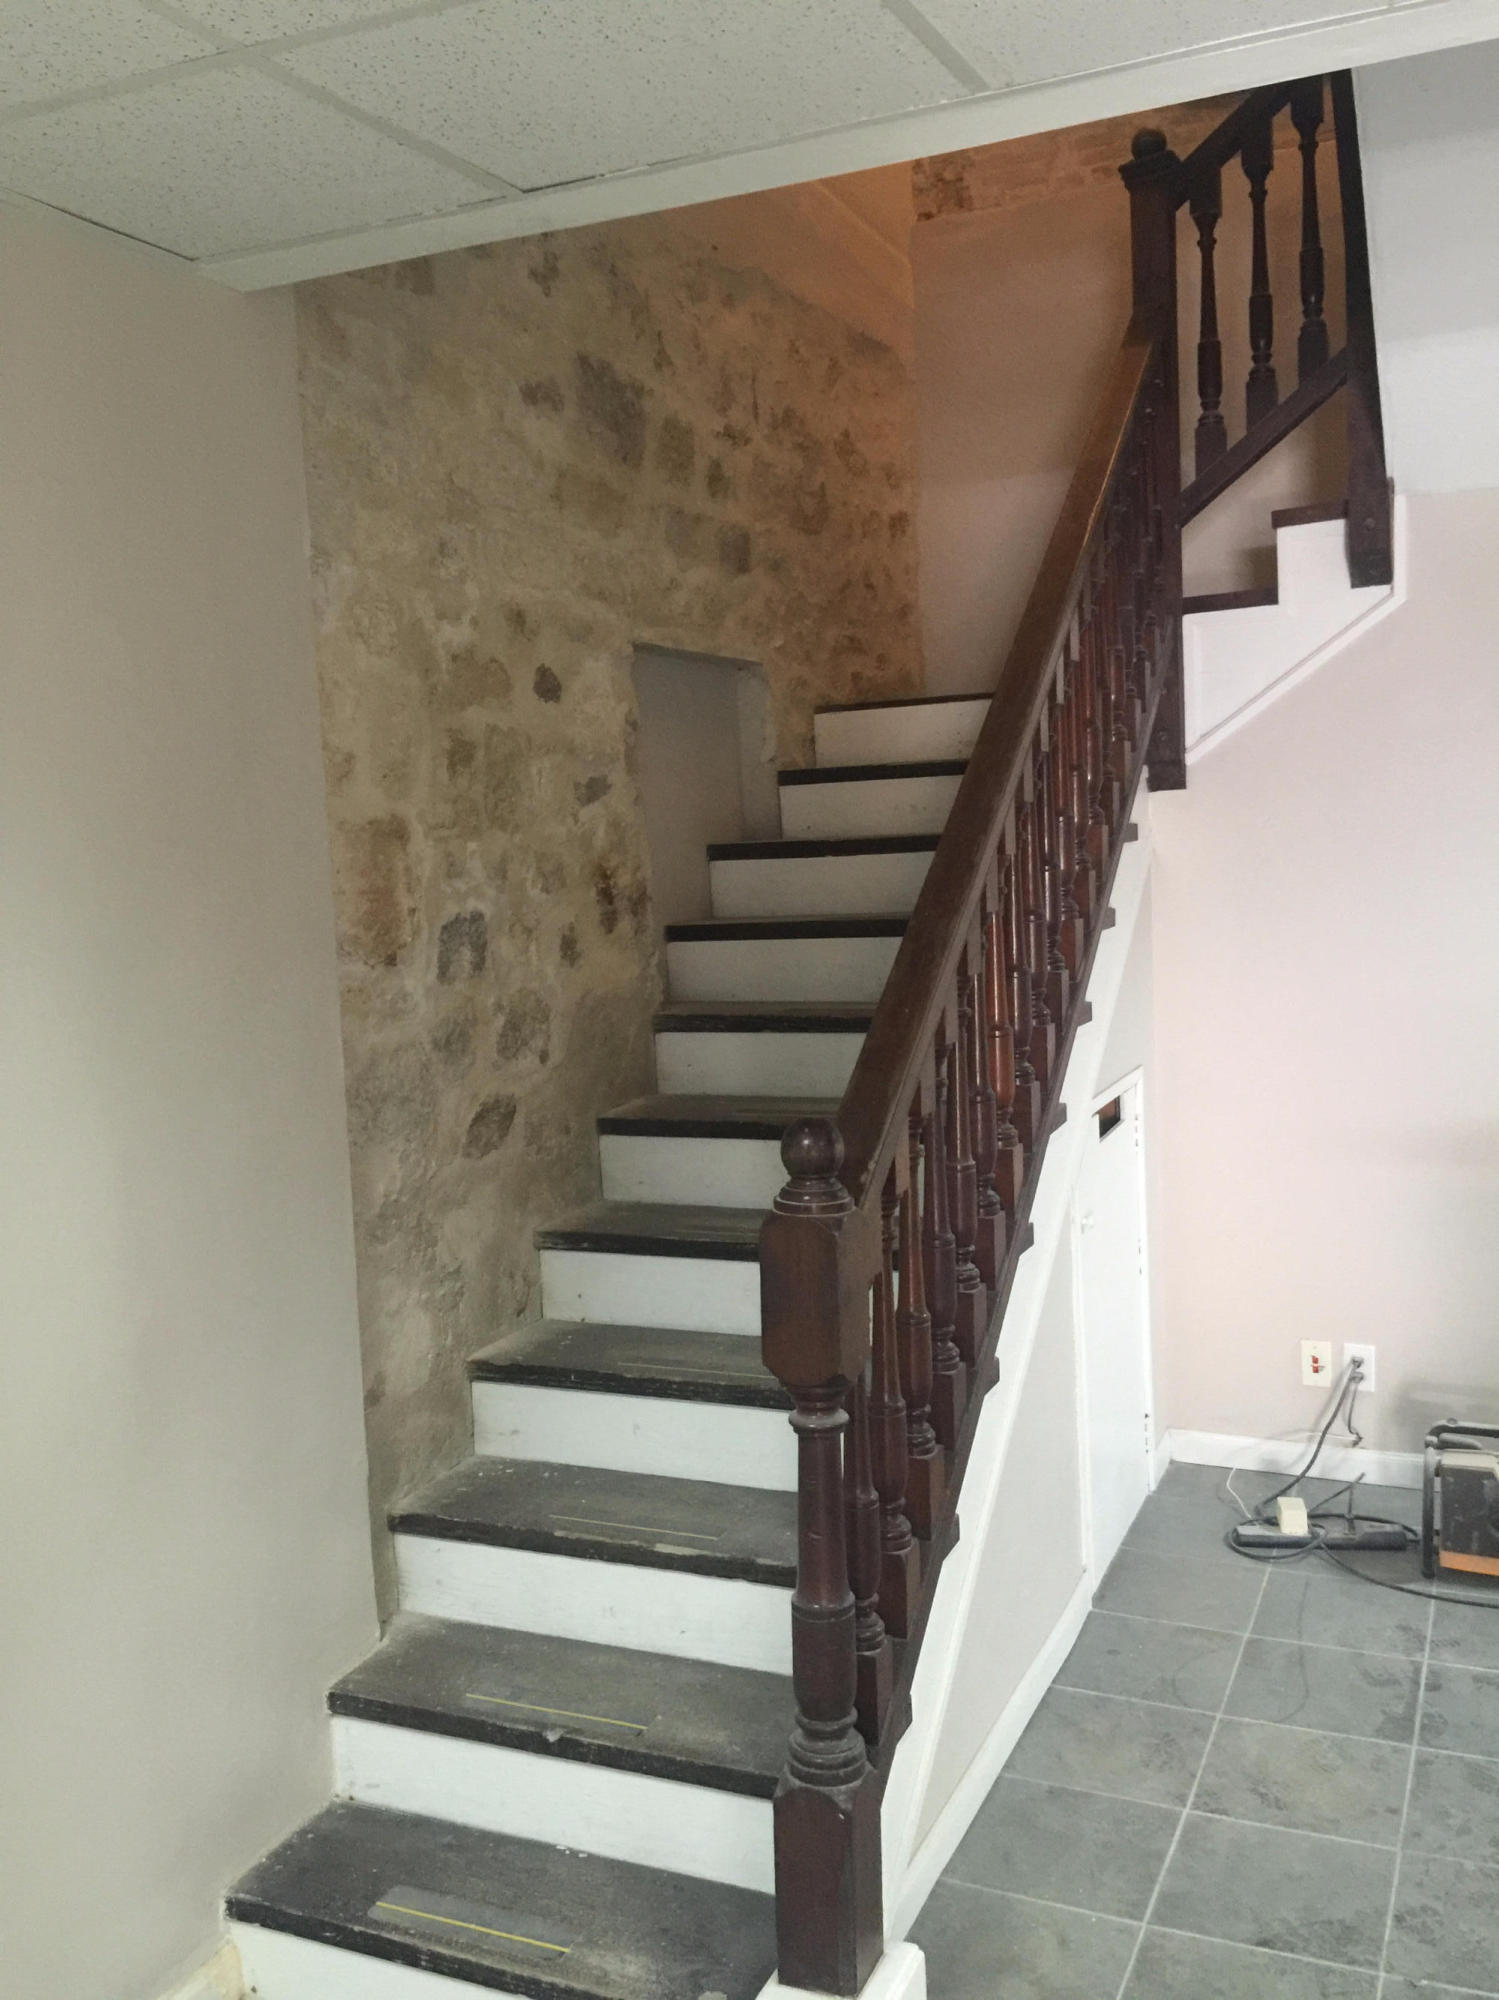 Staircase upstairs